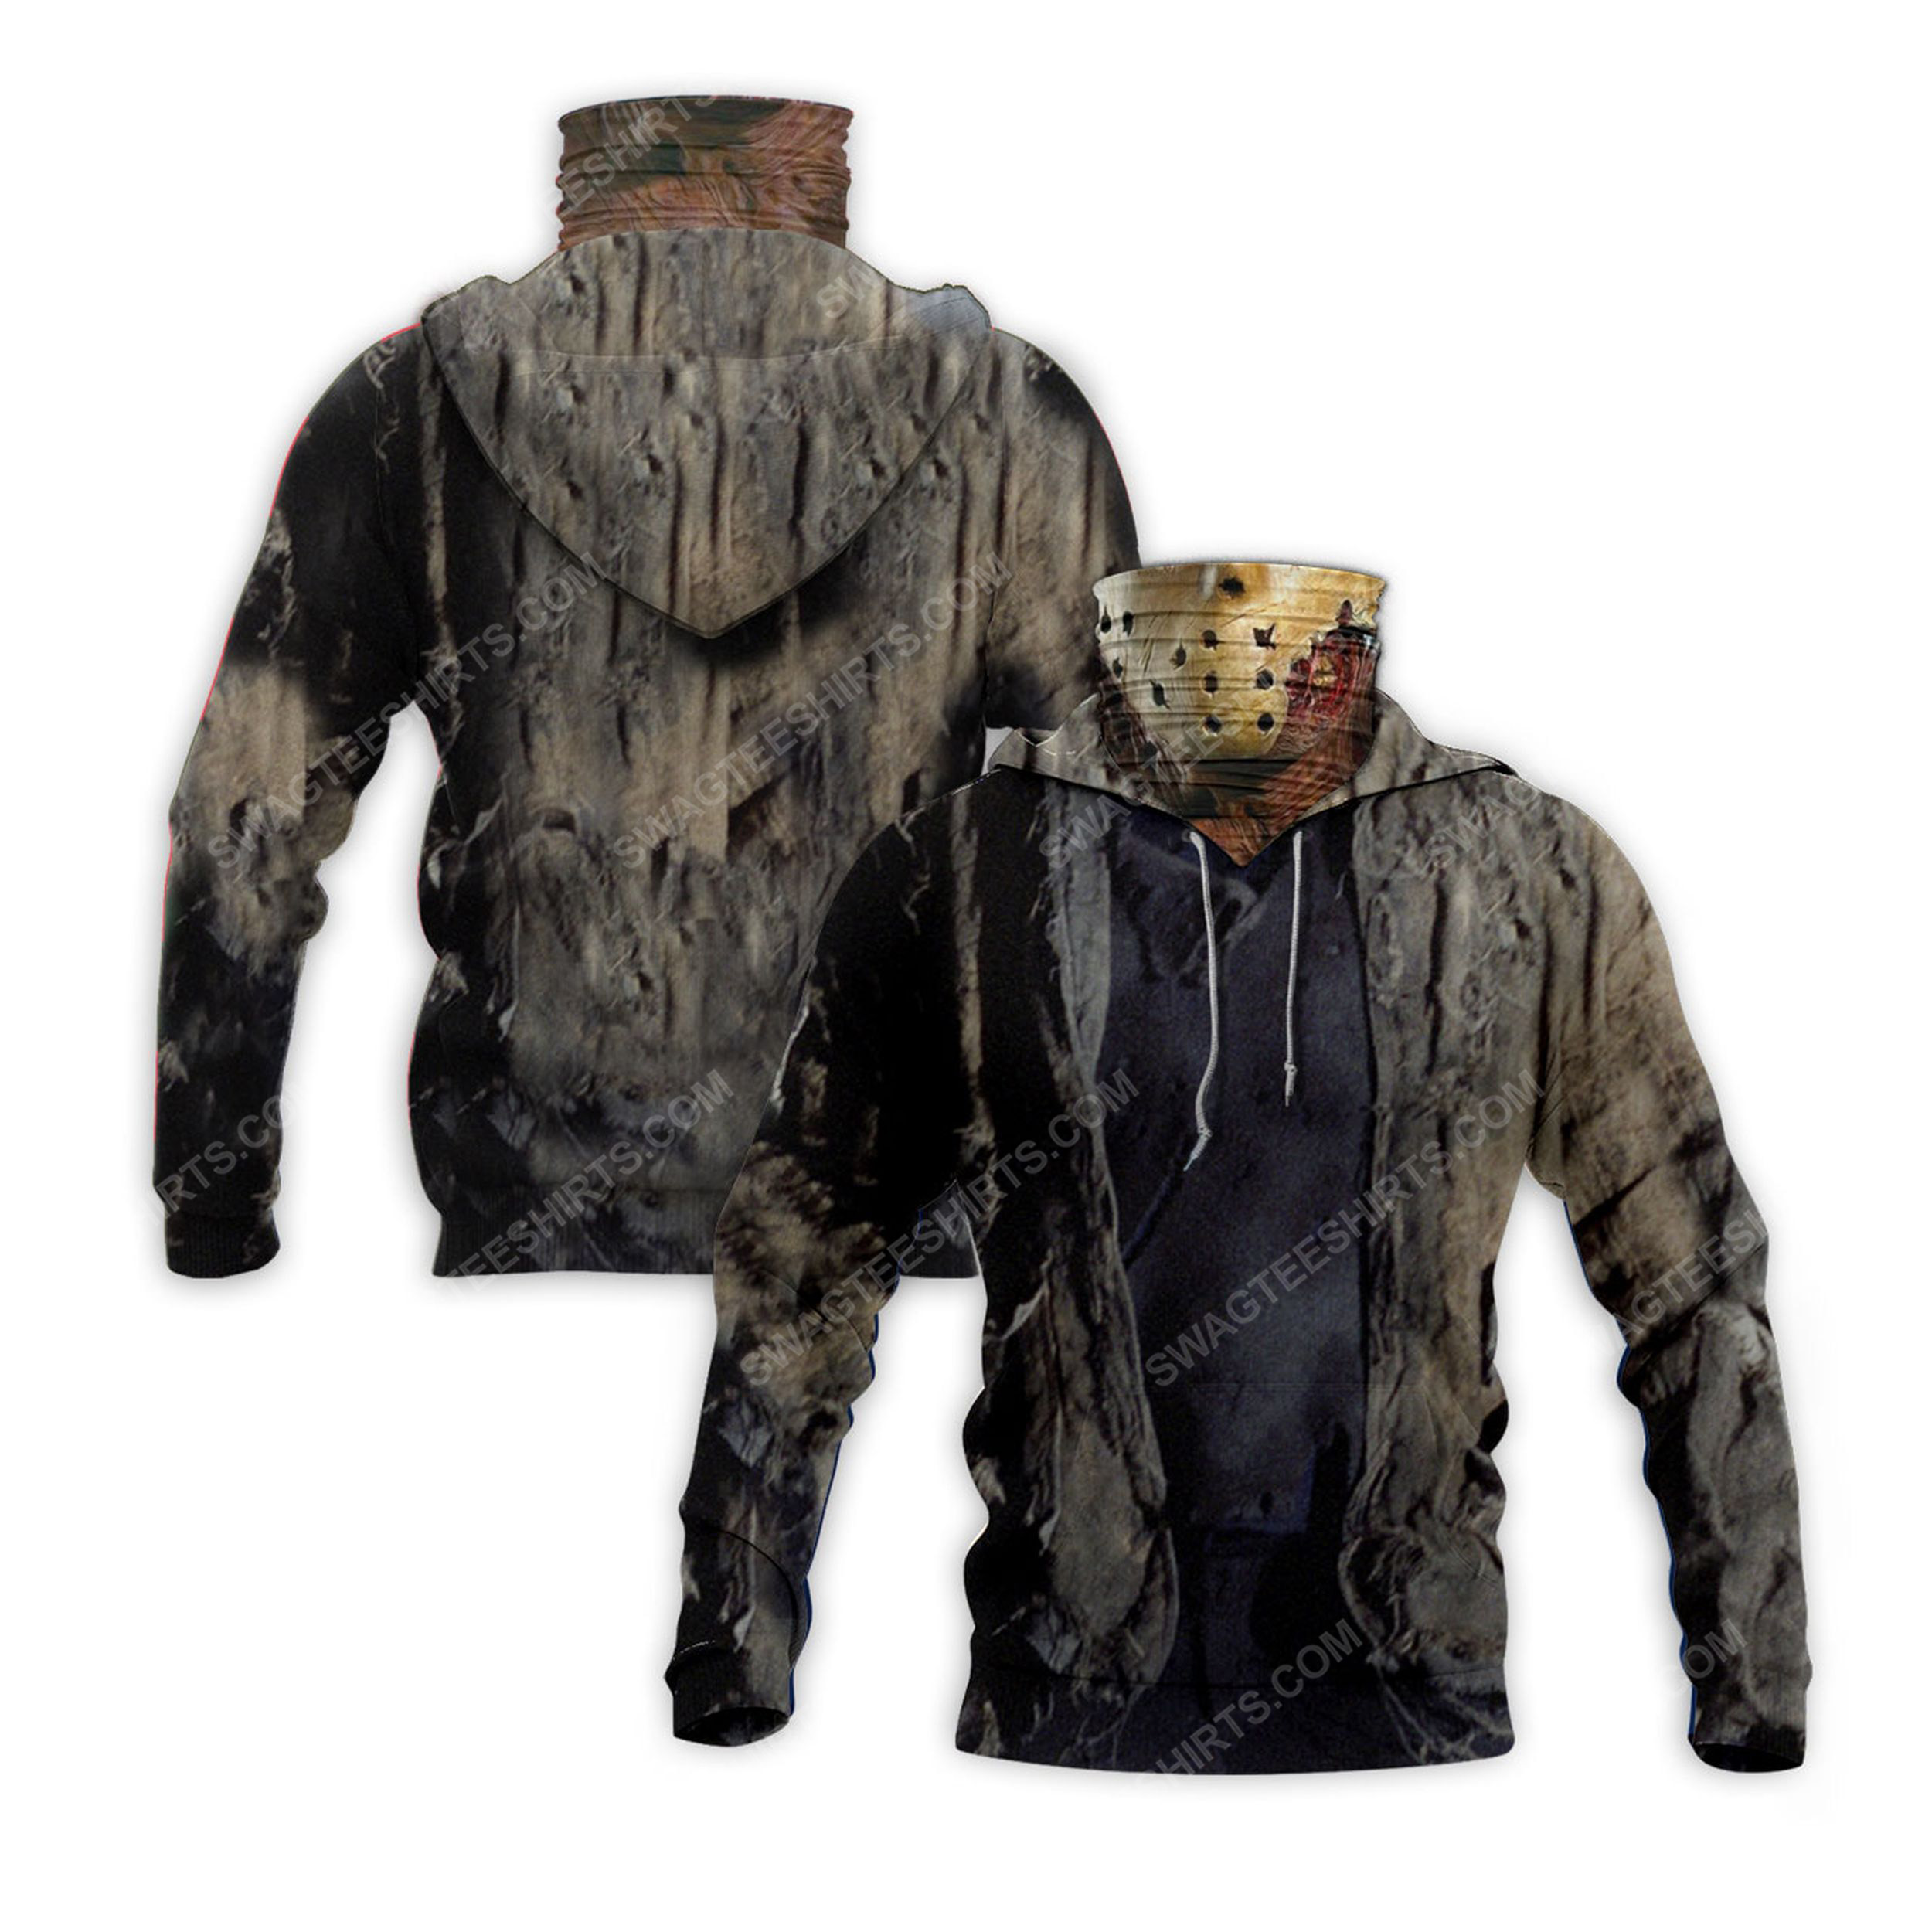 Friday the 13th jason voorhees for halloween full print mask hoodie 2(1)